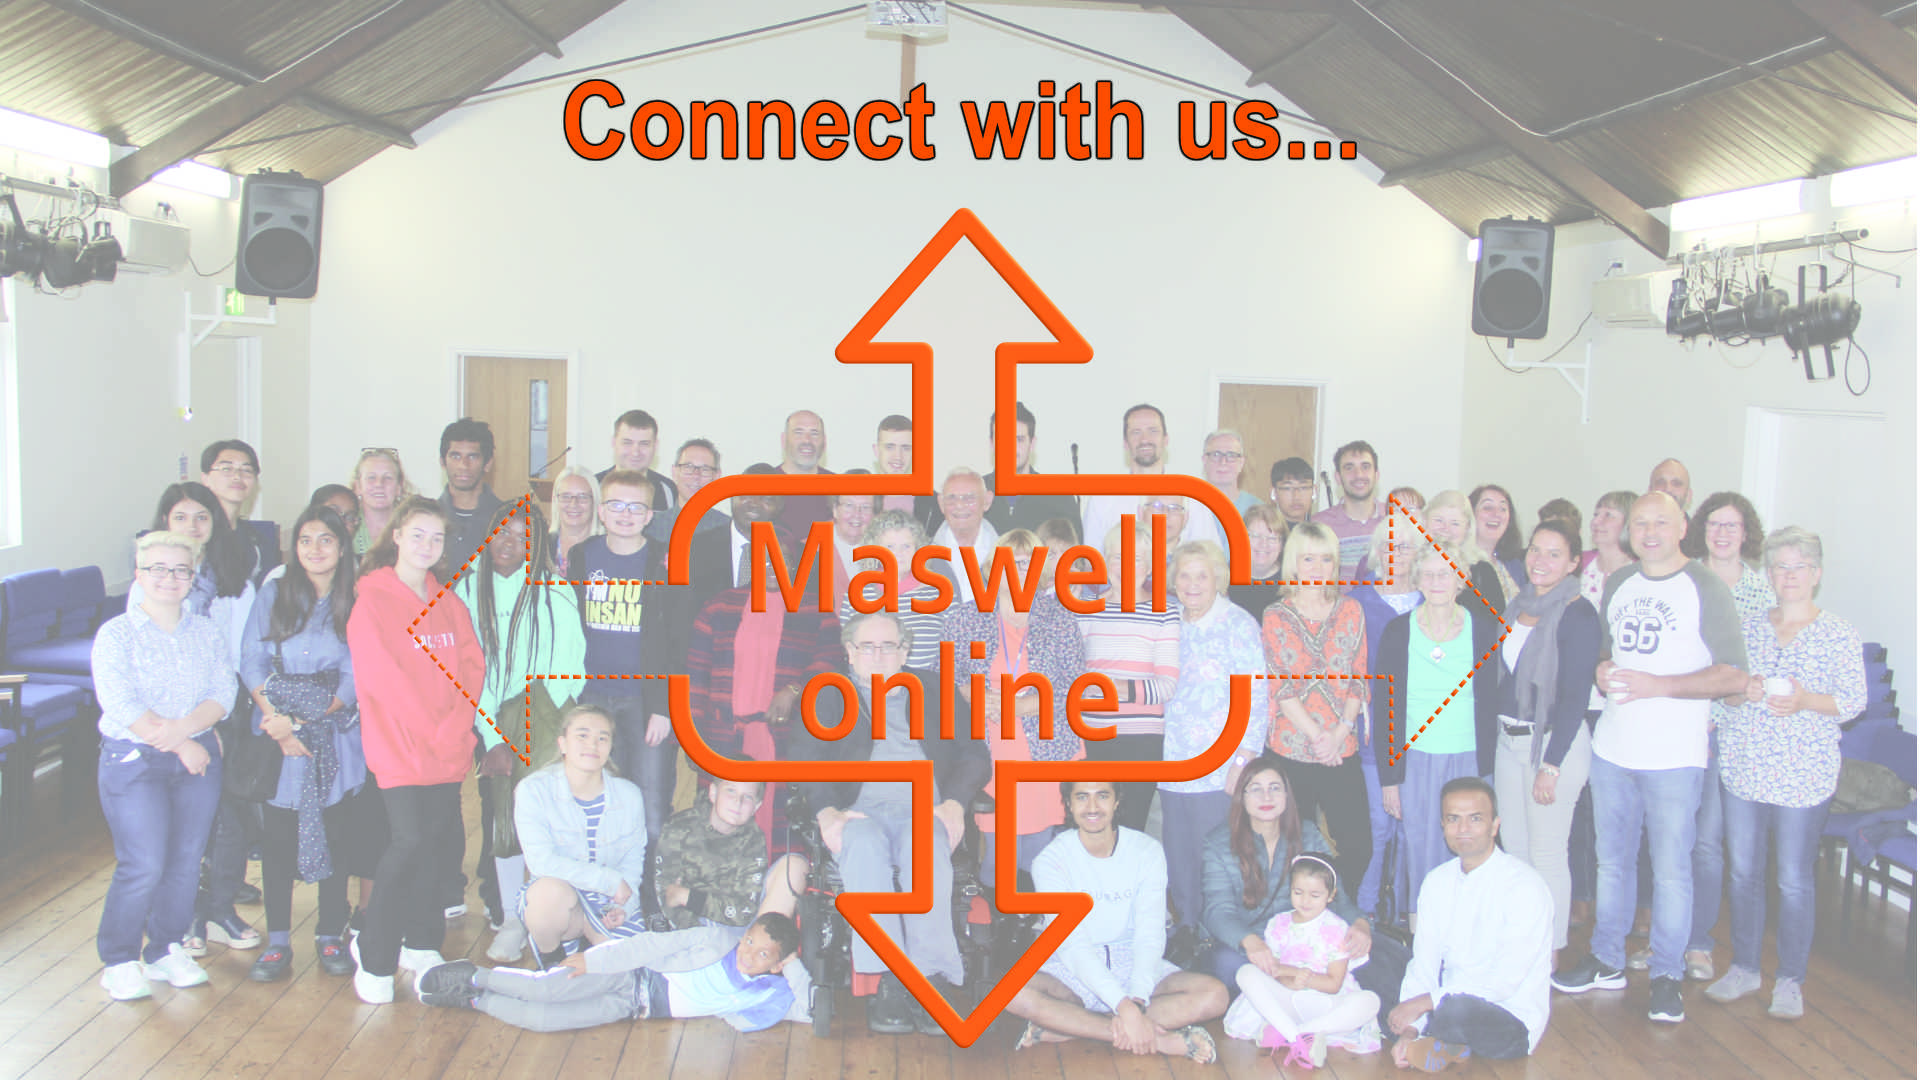 Maswell Online